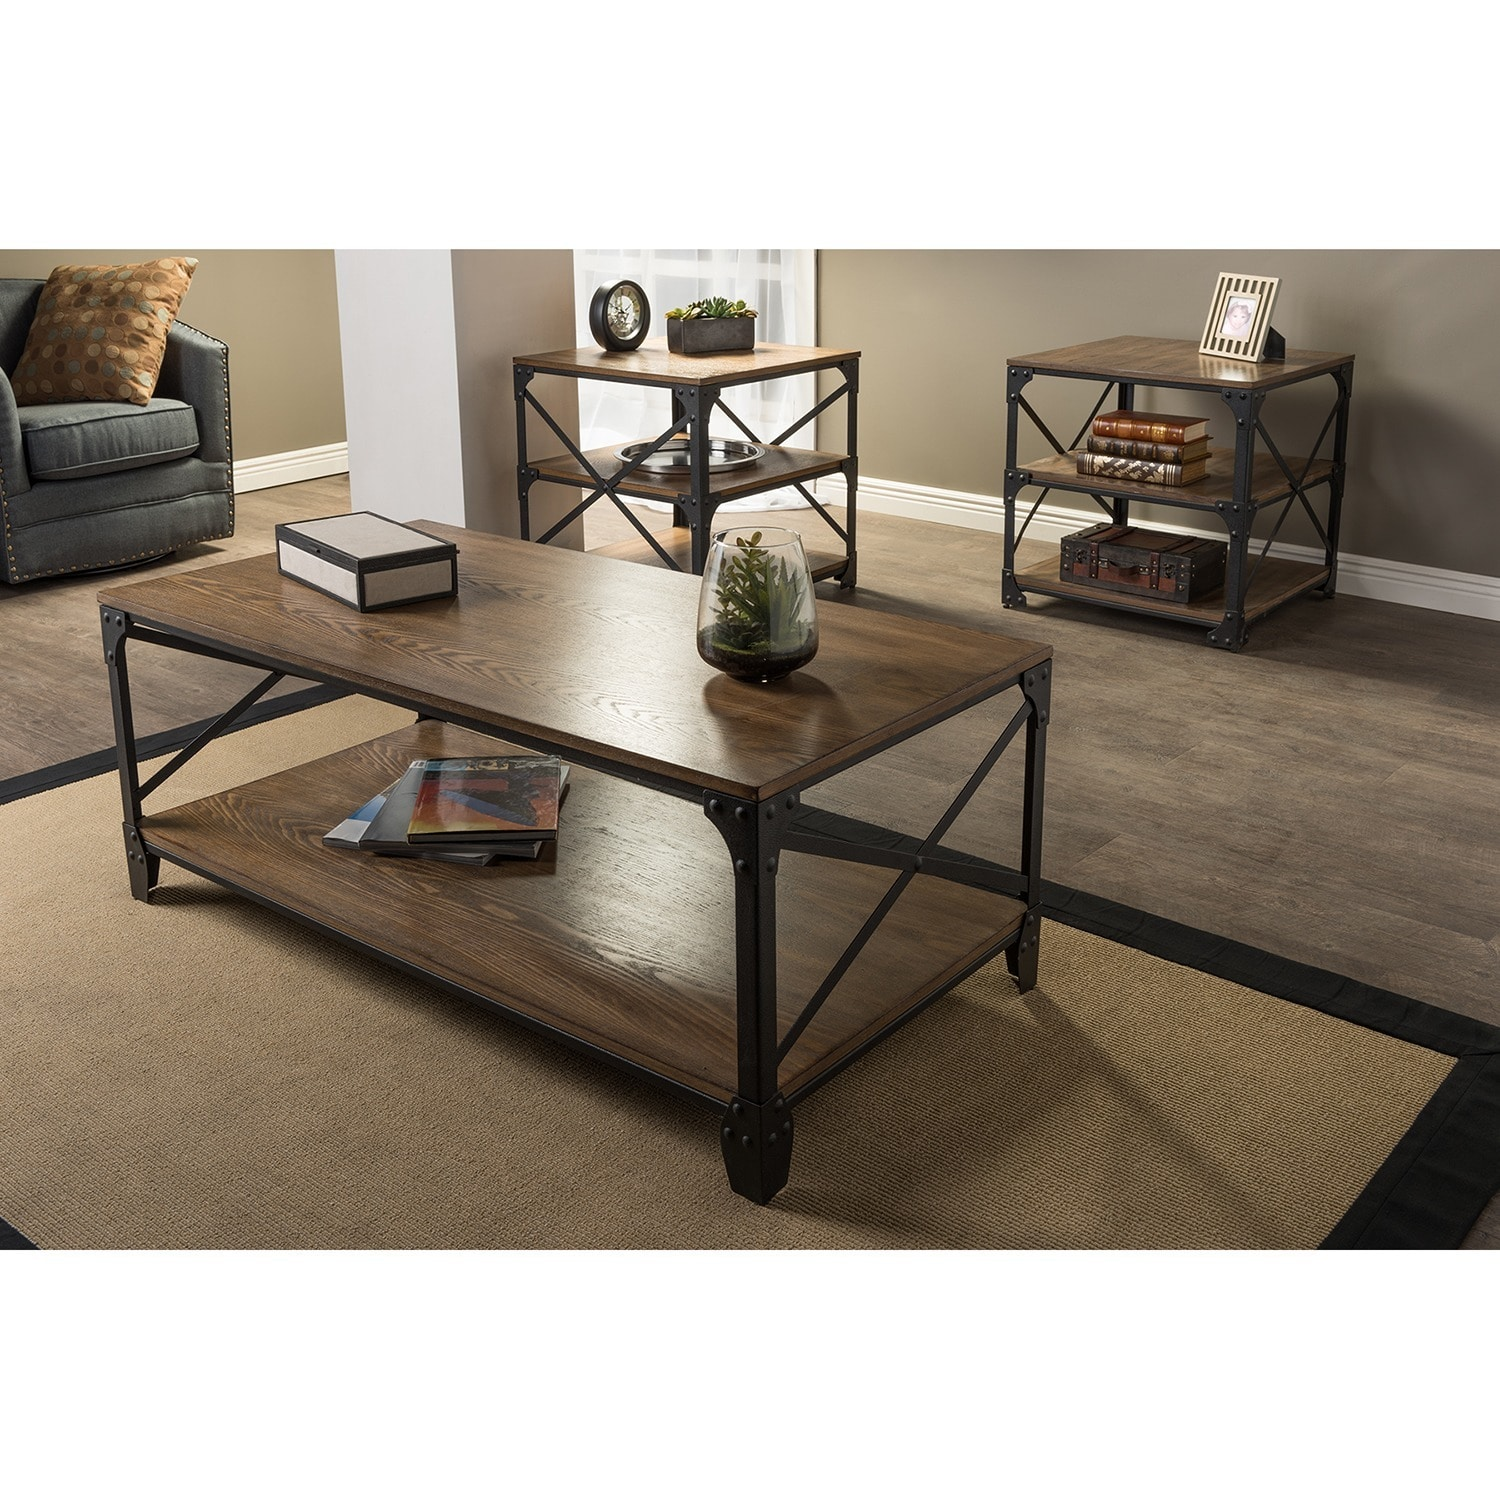 Greyson vintage industrial antique bronze round coffee cocktail table and end tables 3 piece occasional table set